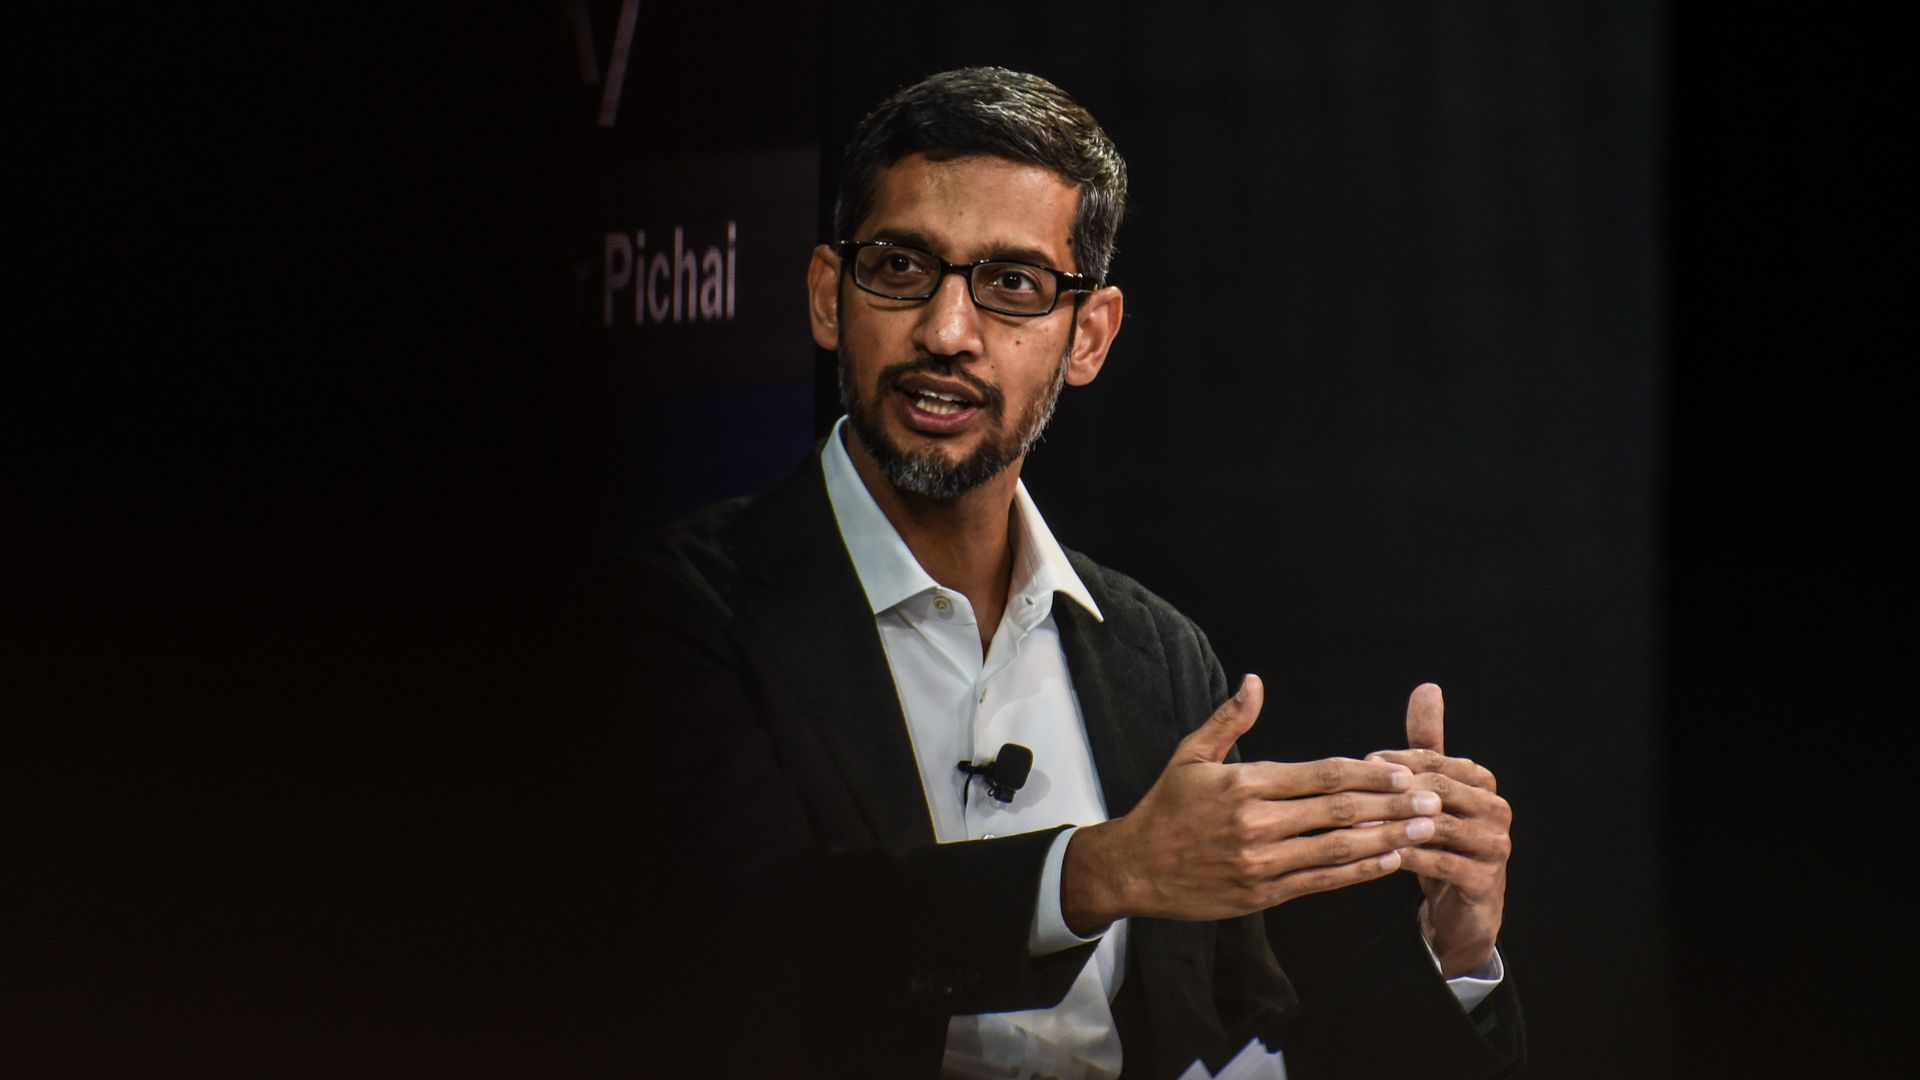 Sundar Pichai speaks at a conference